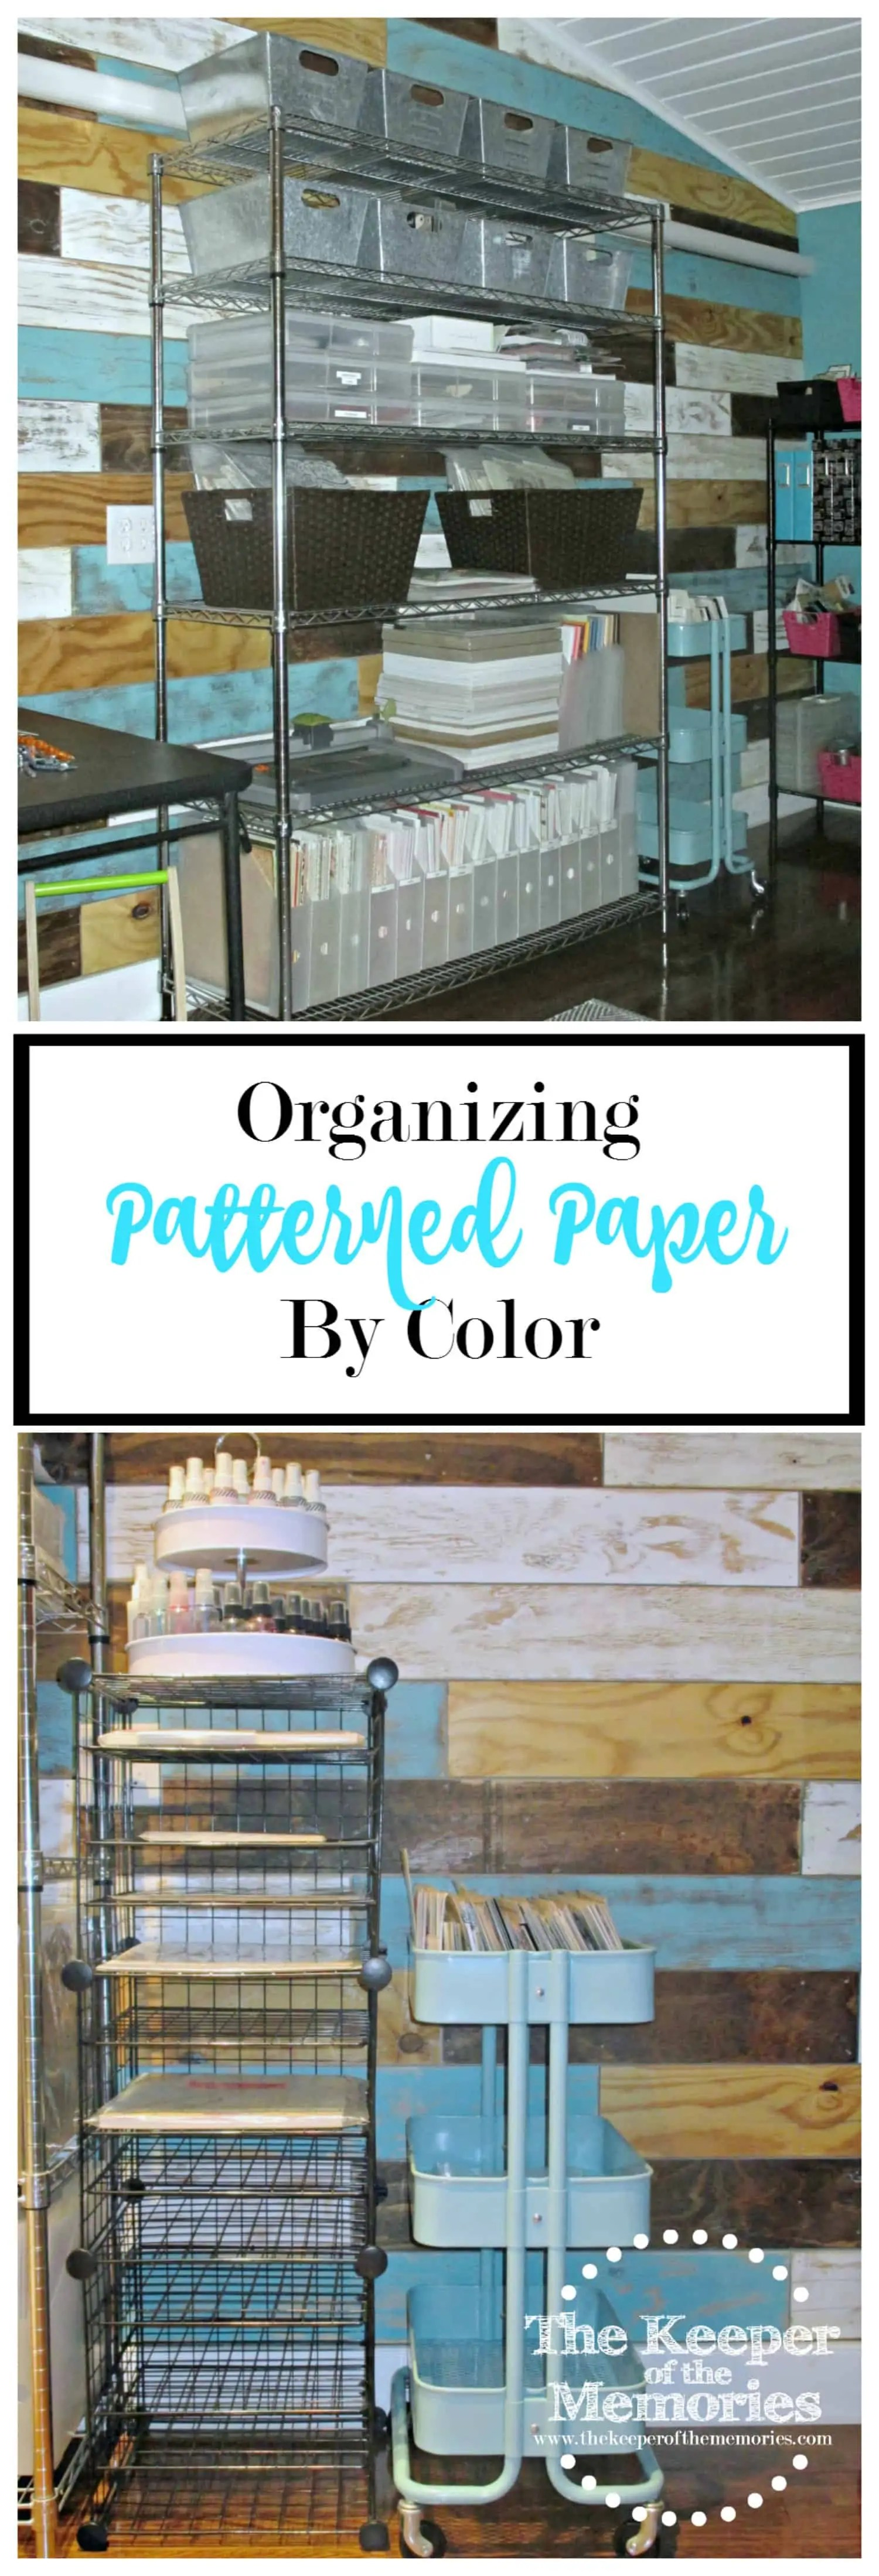 Organizing Patterned Paper By Color